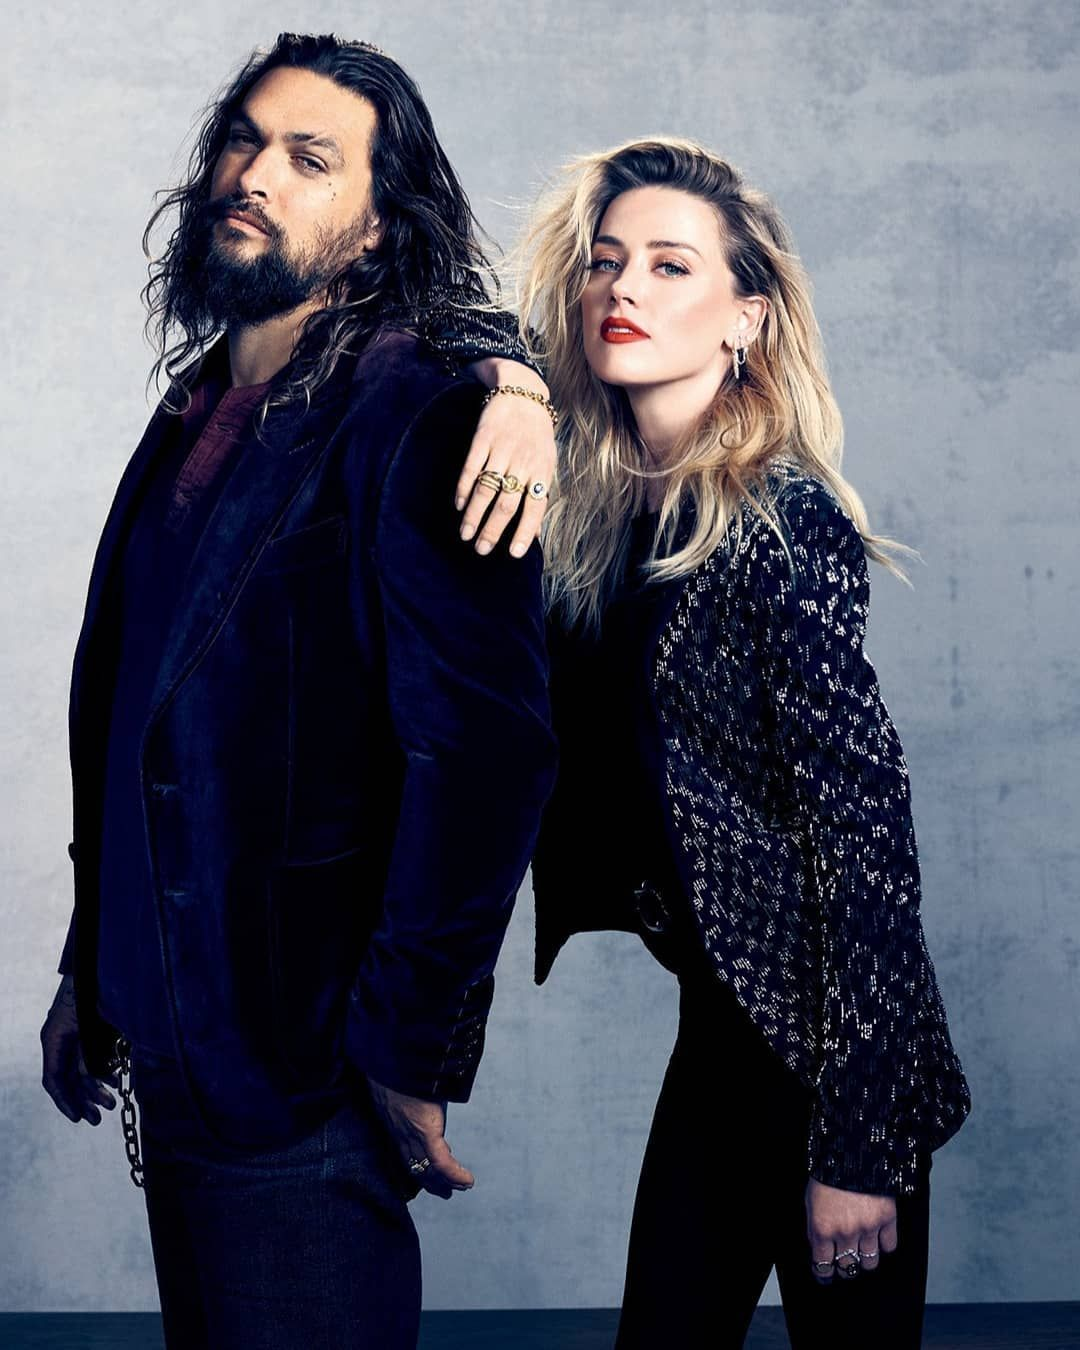 Jason Momoa And Amber Heard- The King And Queen Of